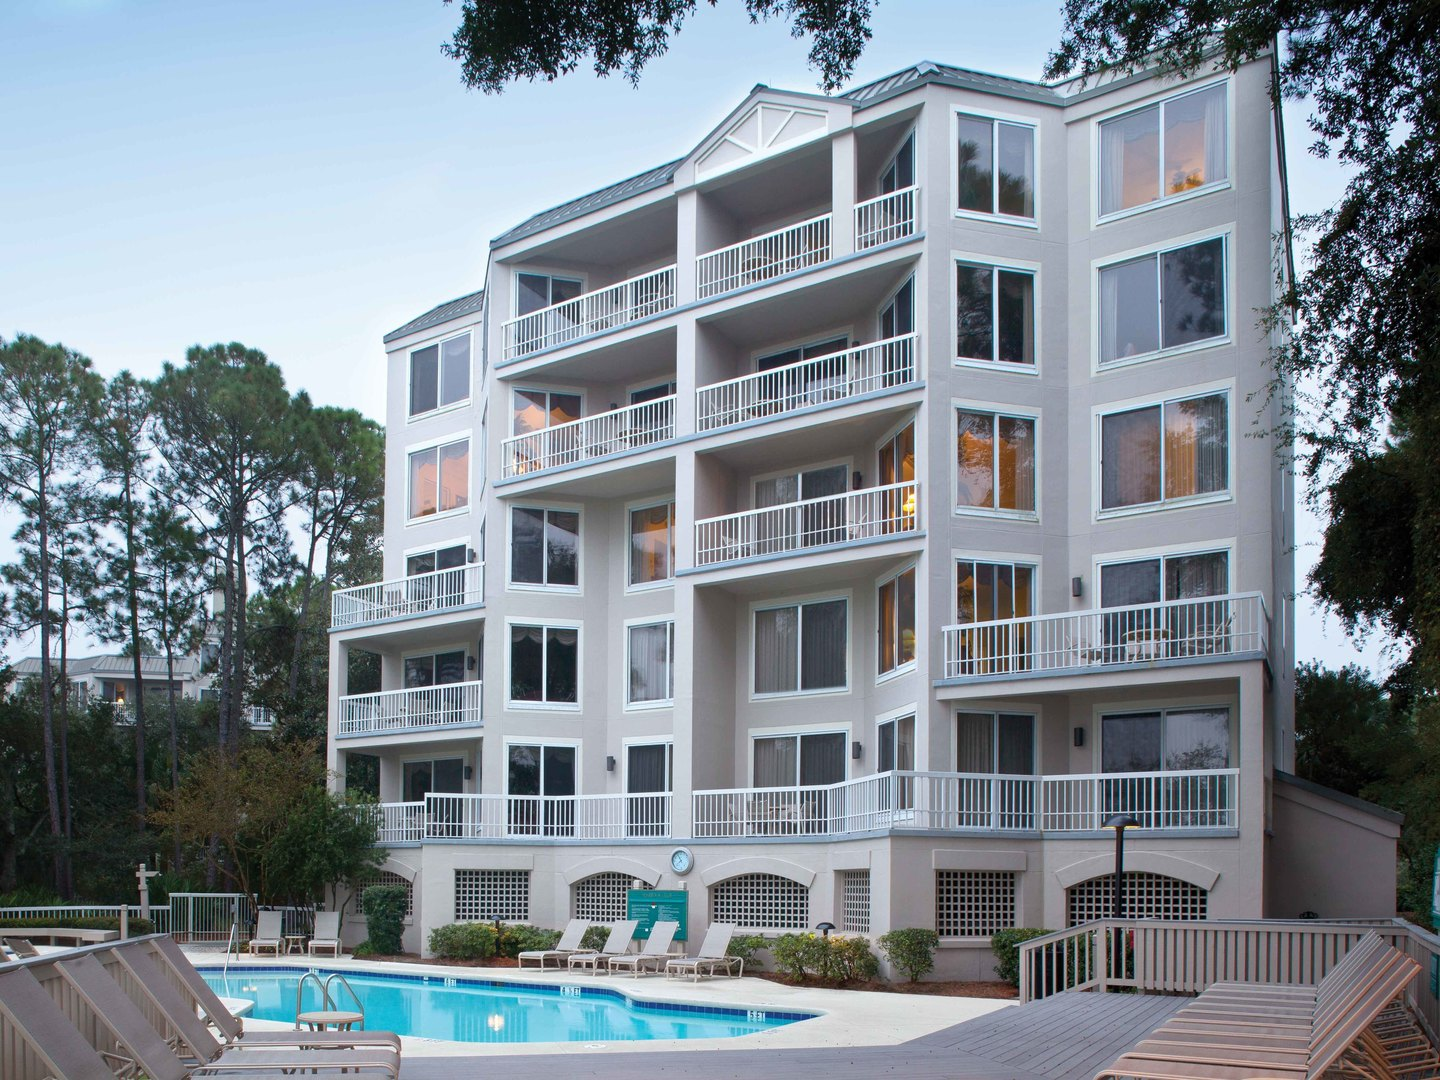 Marriott's Harbour Club Exterior/Pool. Marriott's Harbour Club is located in Hilton Head Island, South Carolina United States.